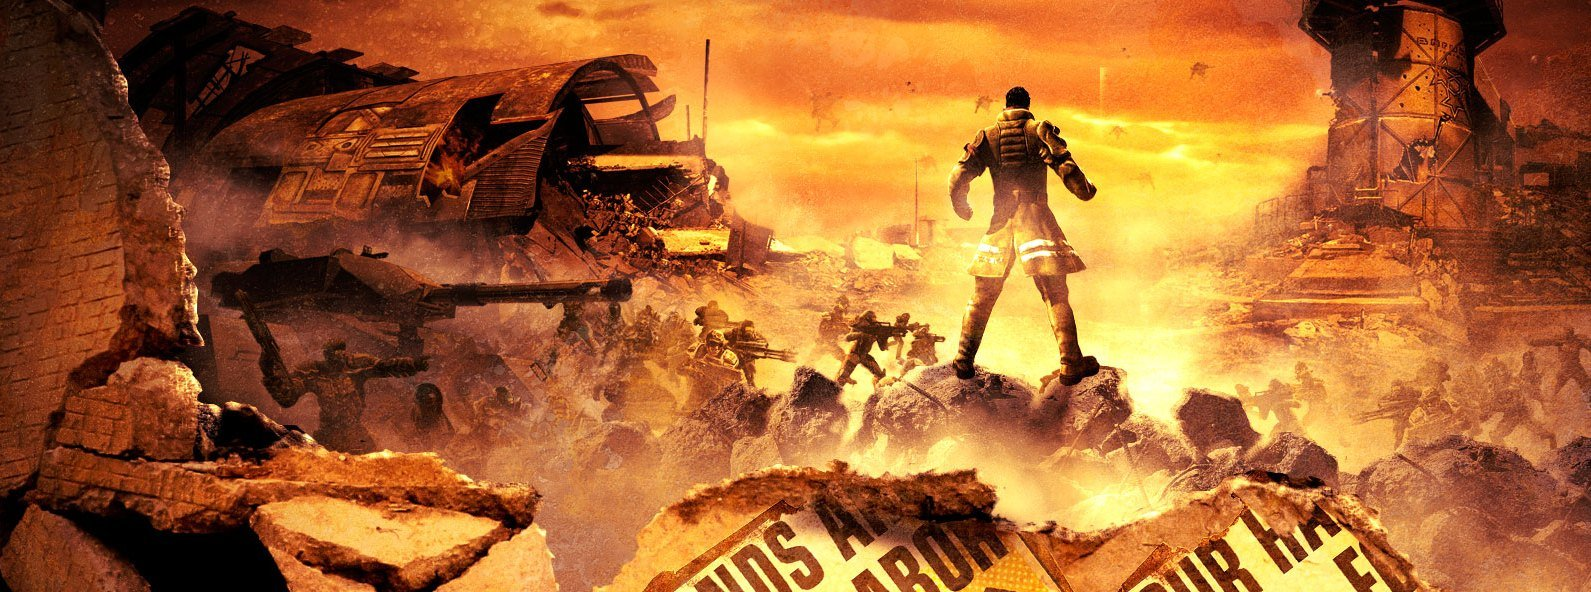 Red Faction Guerrilla Re-Mars-tered is heading to PC, PS4 and Xbox One this year screenshot